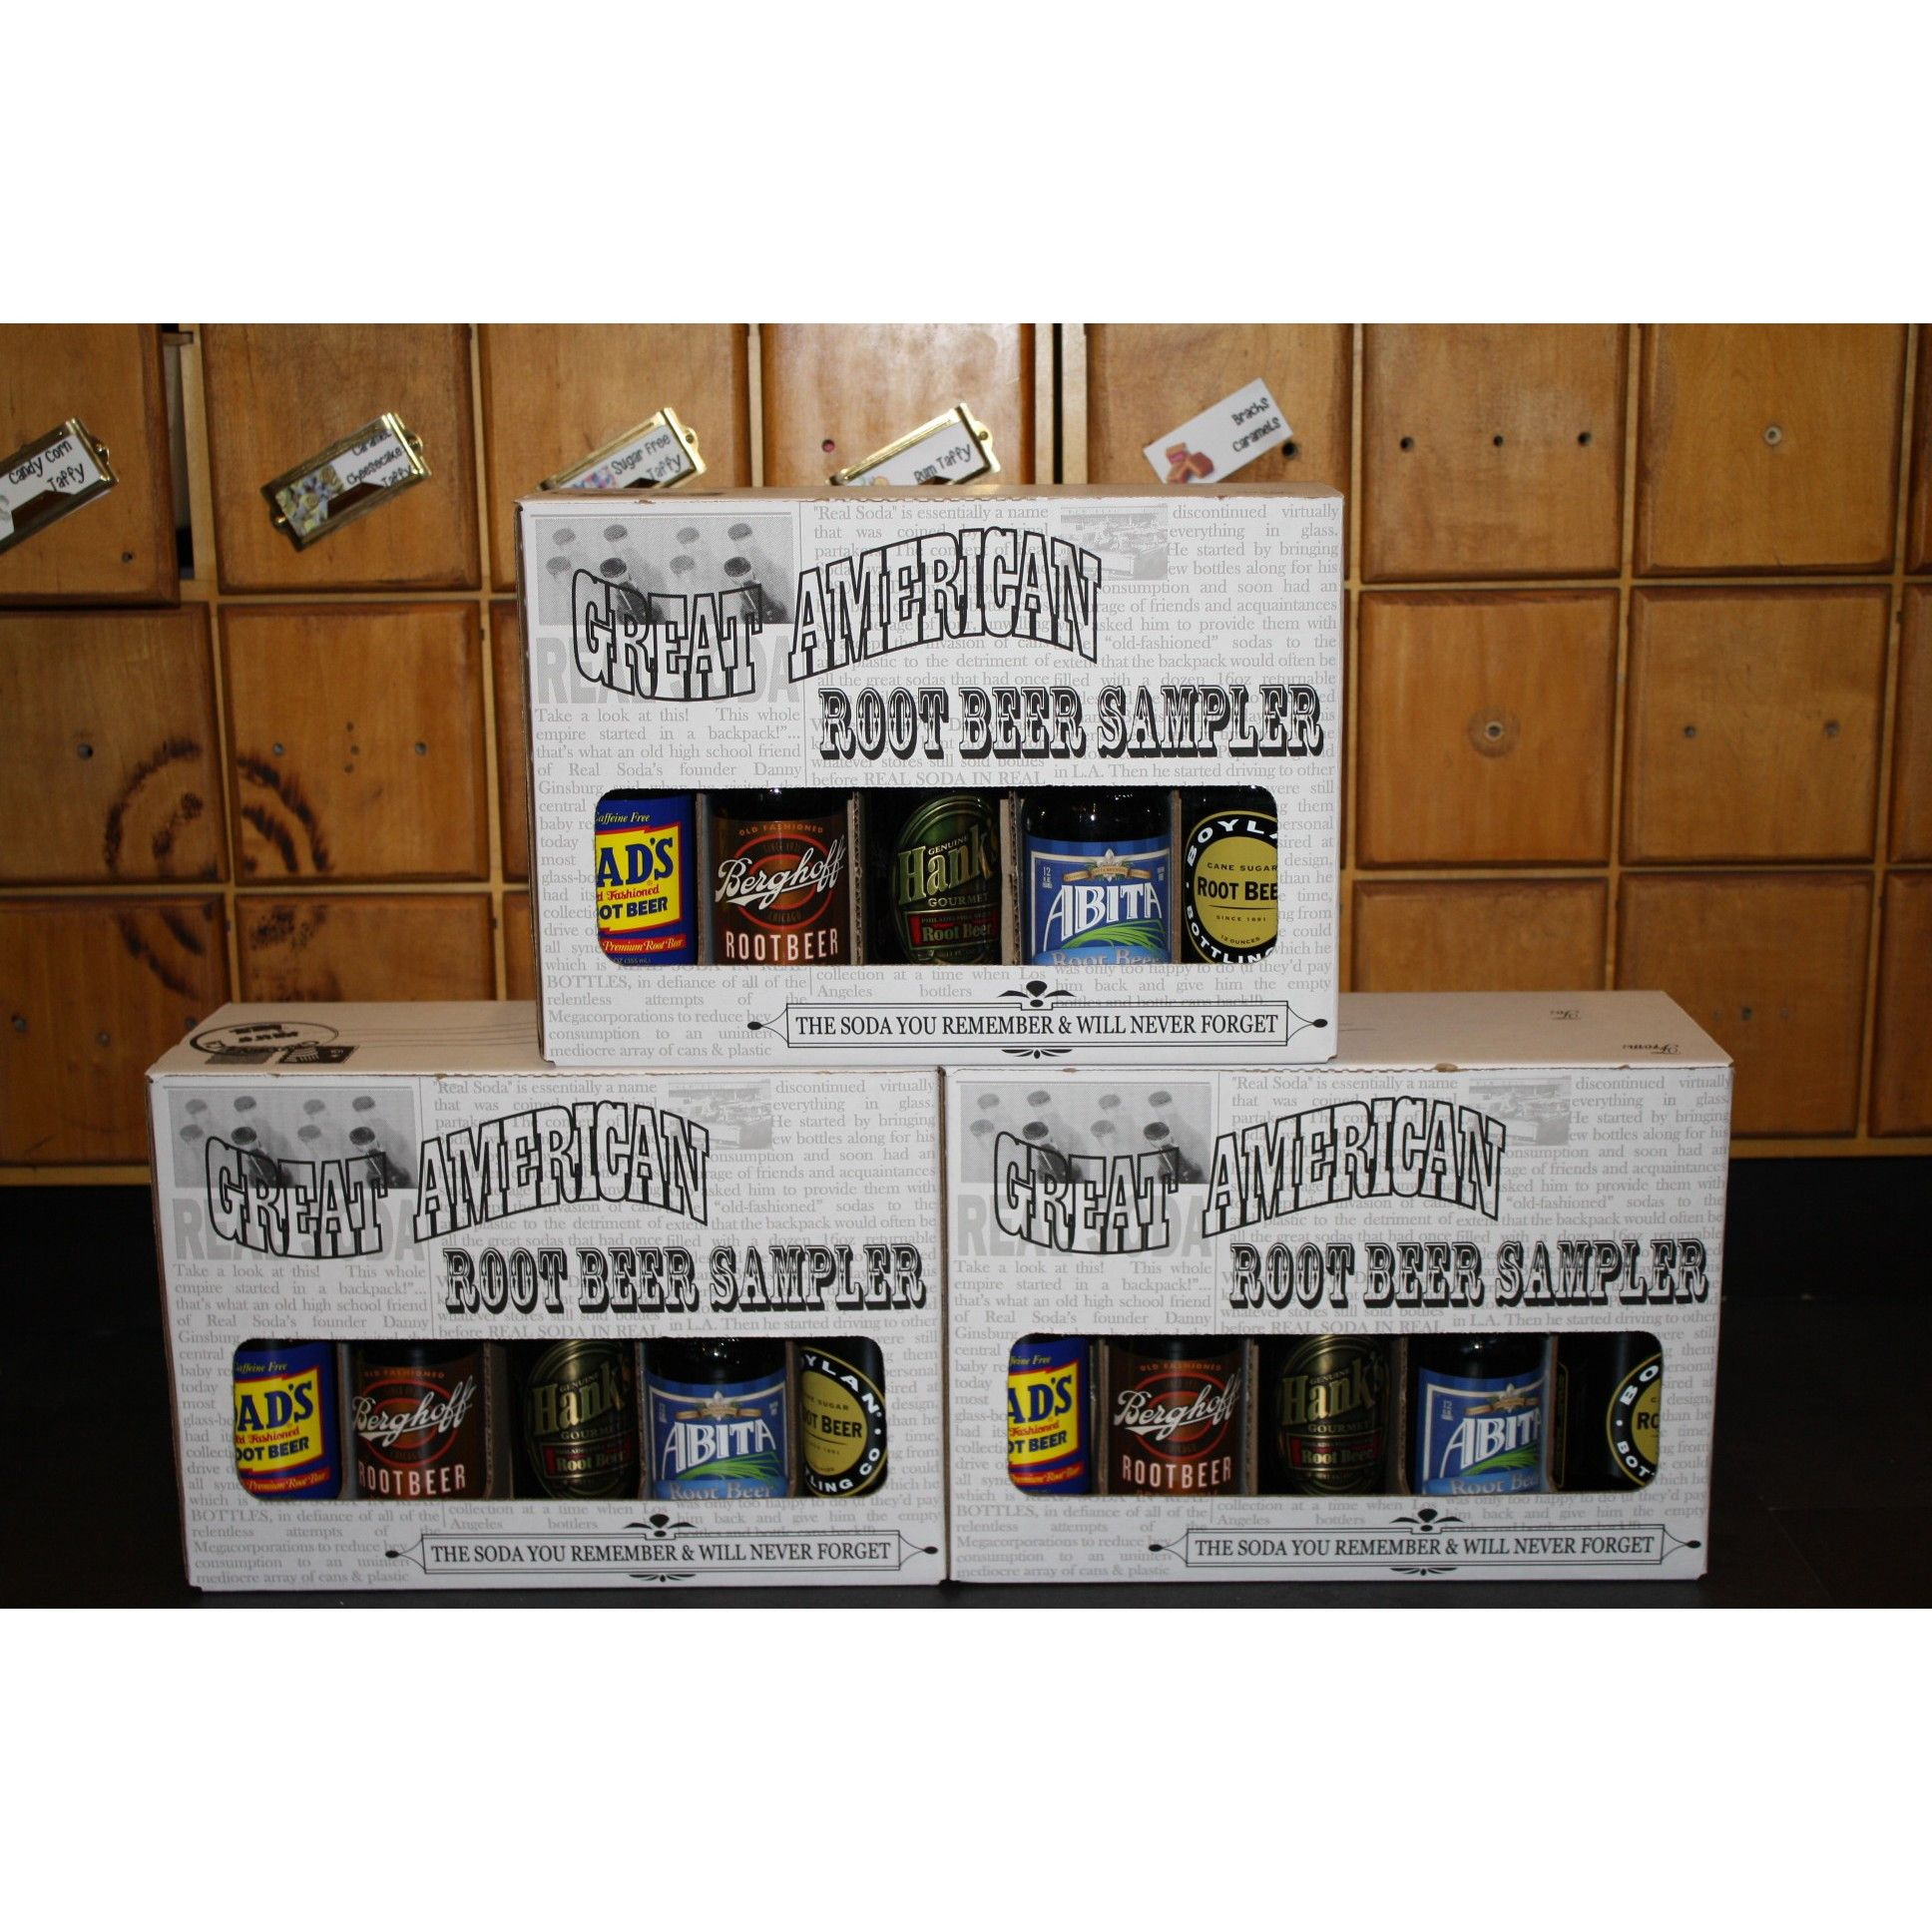 Great American Root Beer Sampler | Products, Roots and Root beer